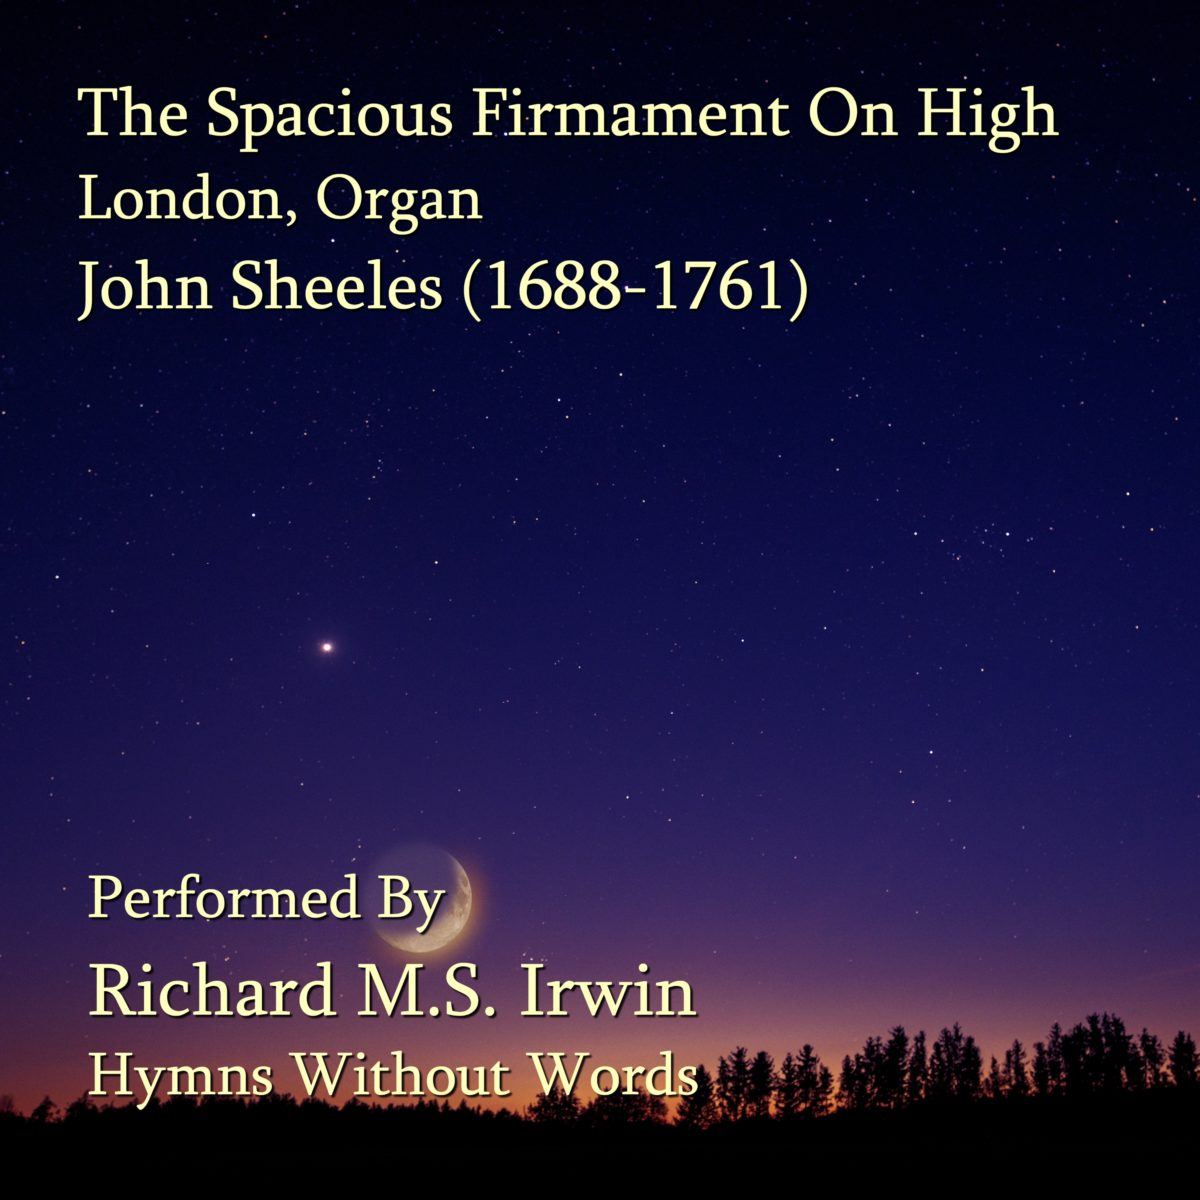 The Spacious Firmament On High (London, Organ, 3 Verses)